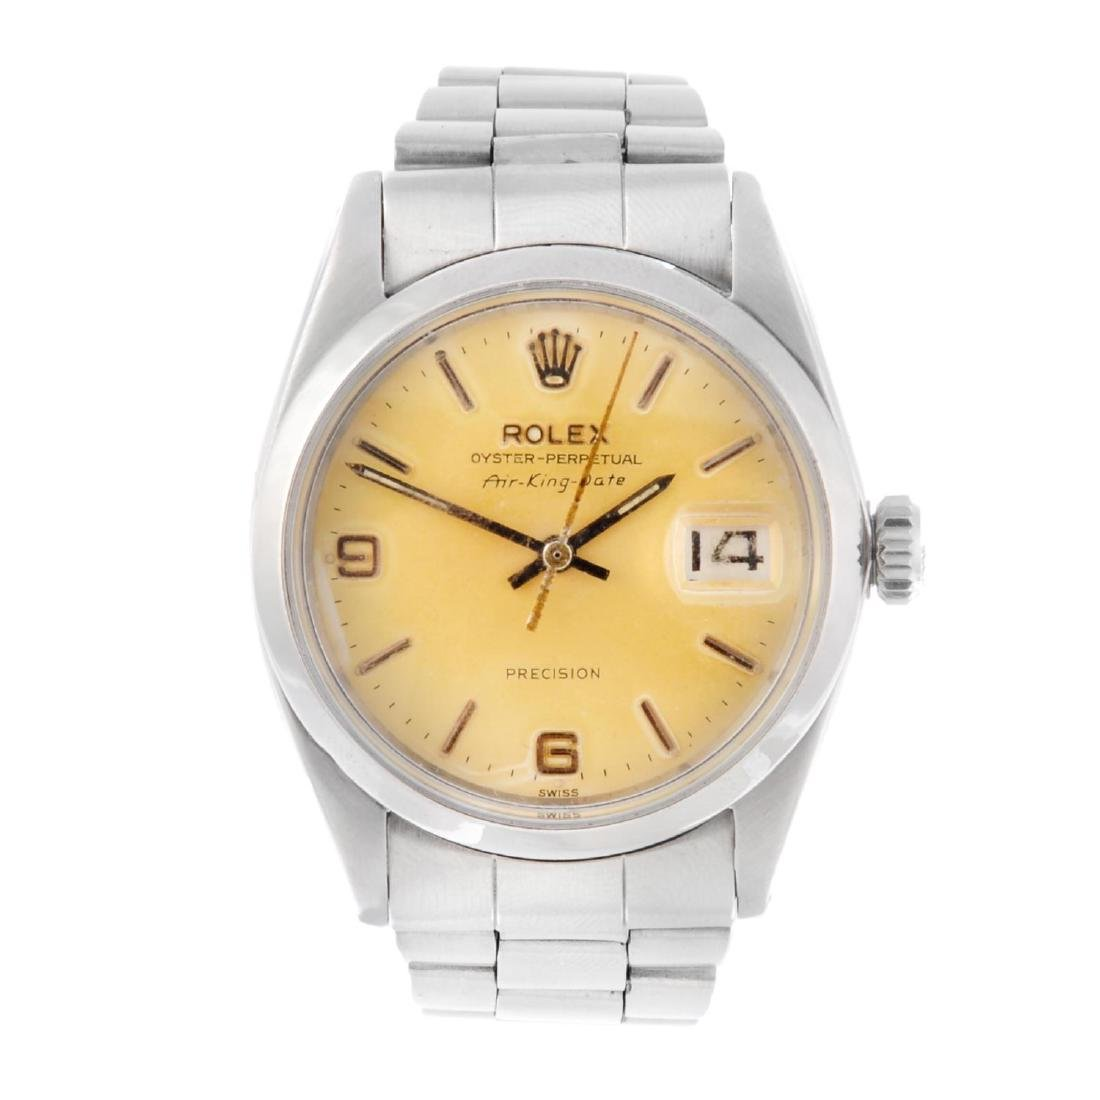 ROLEX - a gentleman's Oyster Perpetual Air-King-Date